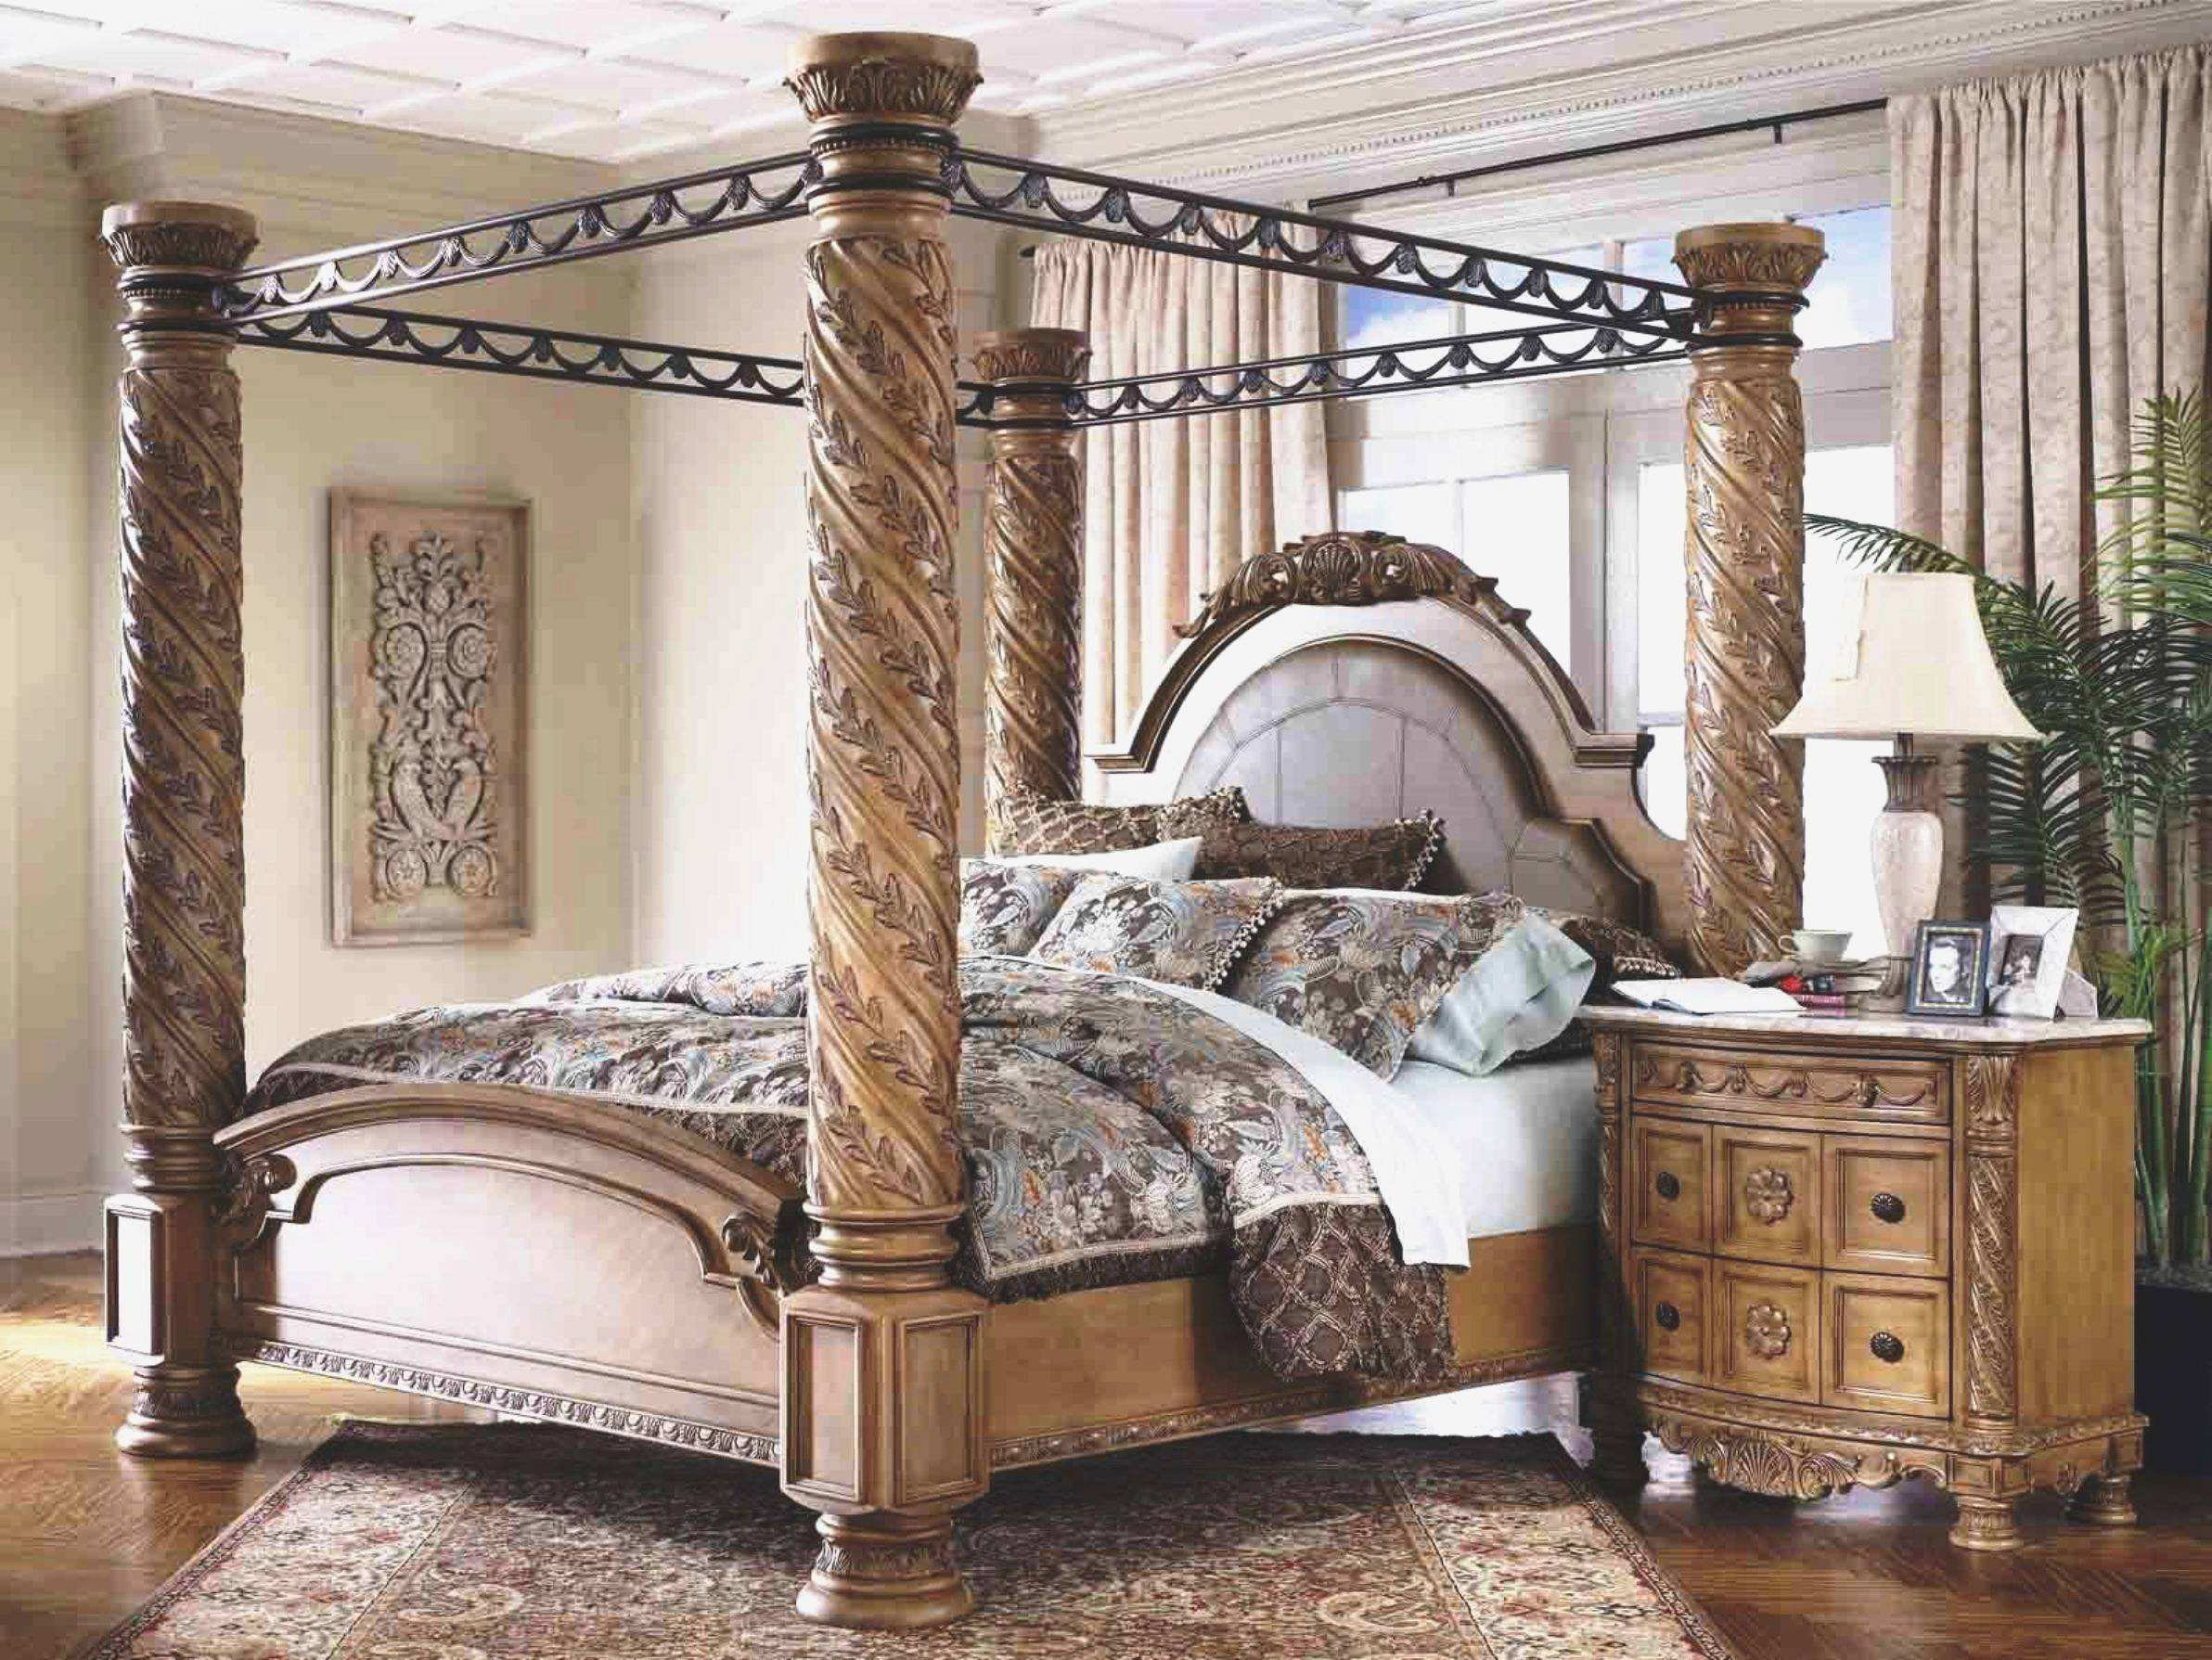 Best ideas about Havertys Bedroom Furniture . Save or Pin Havertys Bedroom Set Luxury Havertys Bedroom Furniture Now.